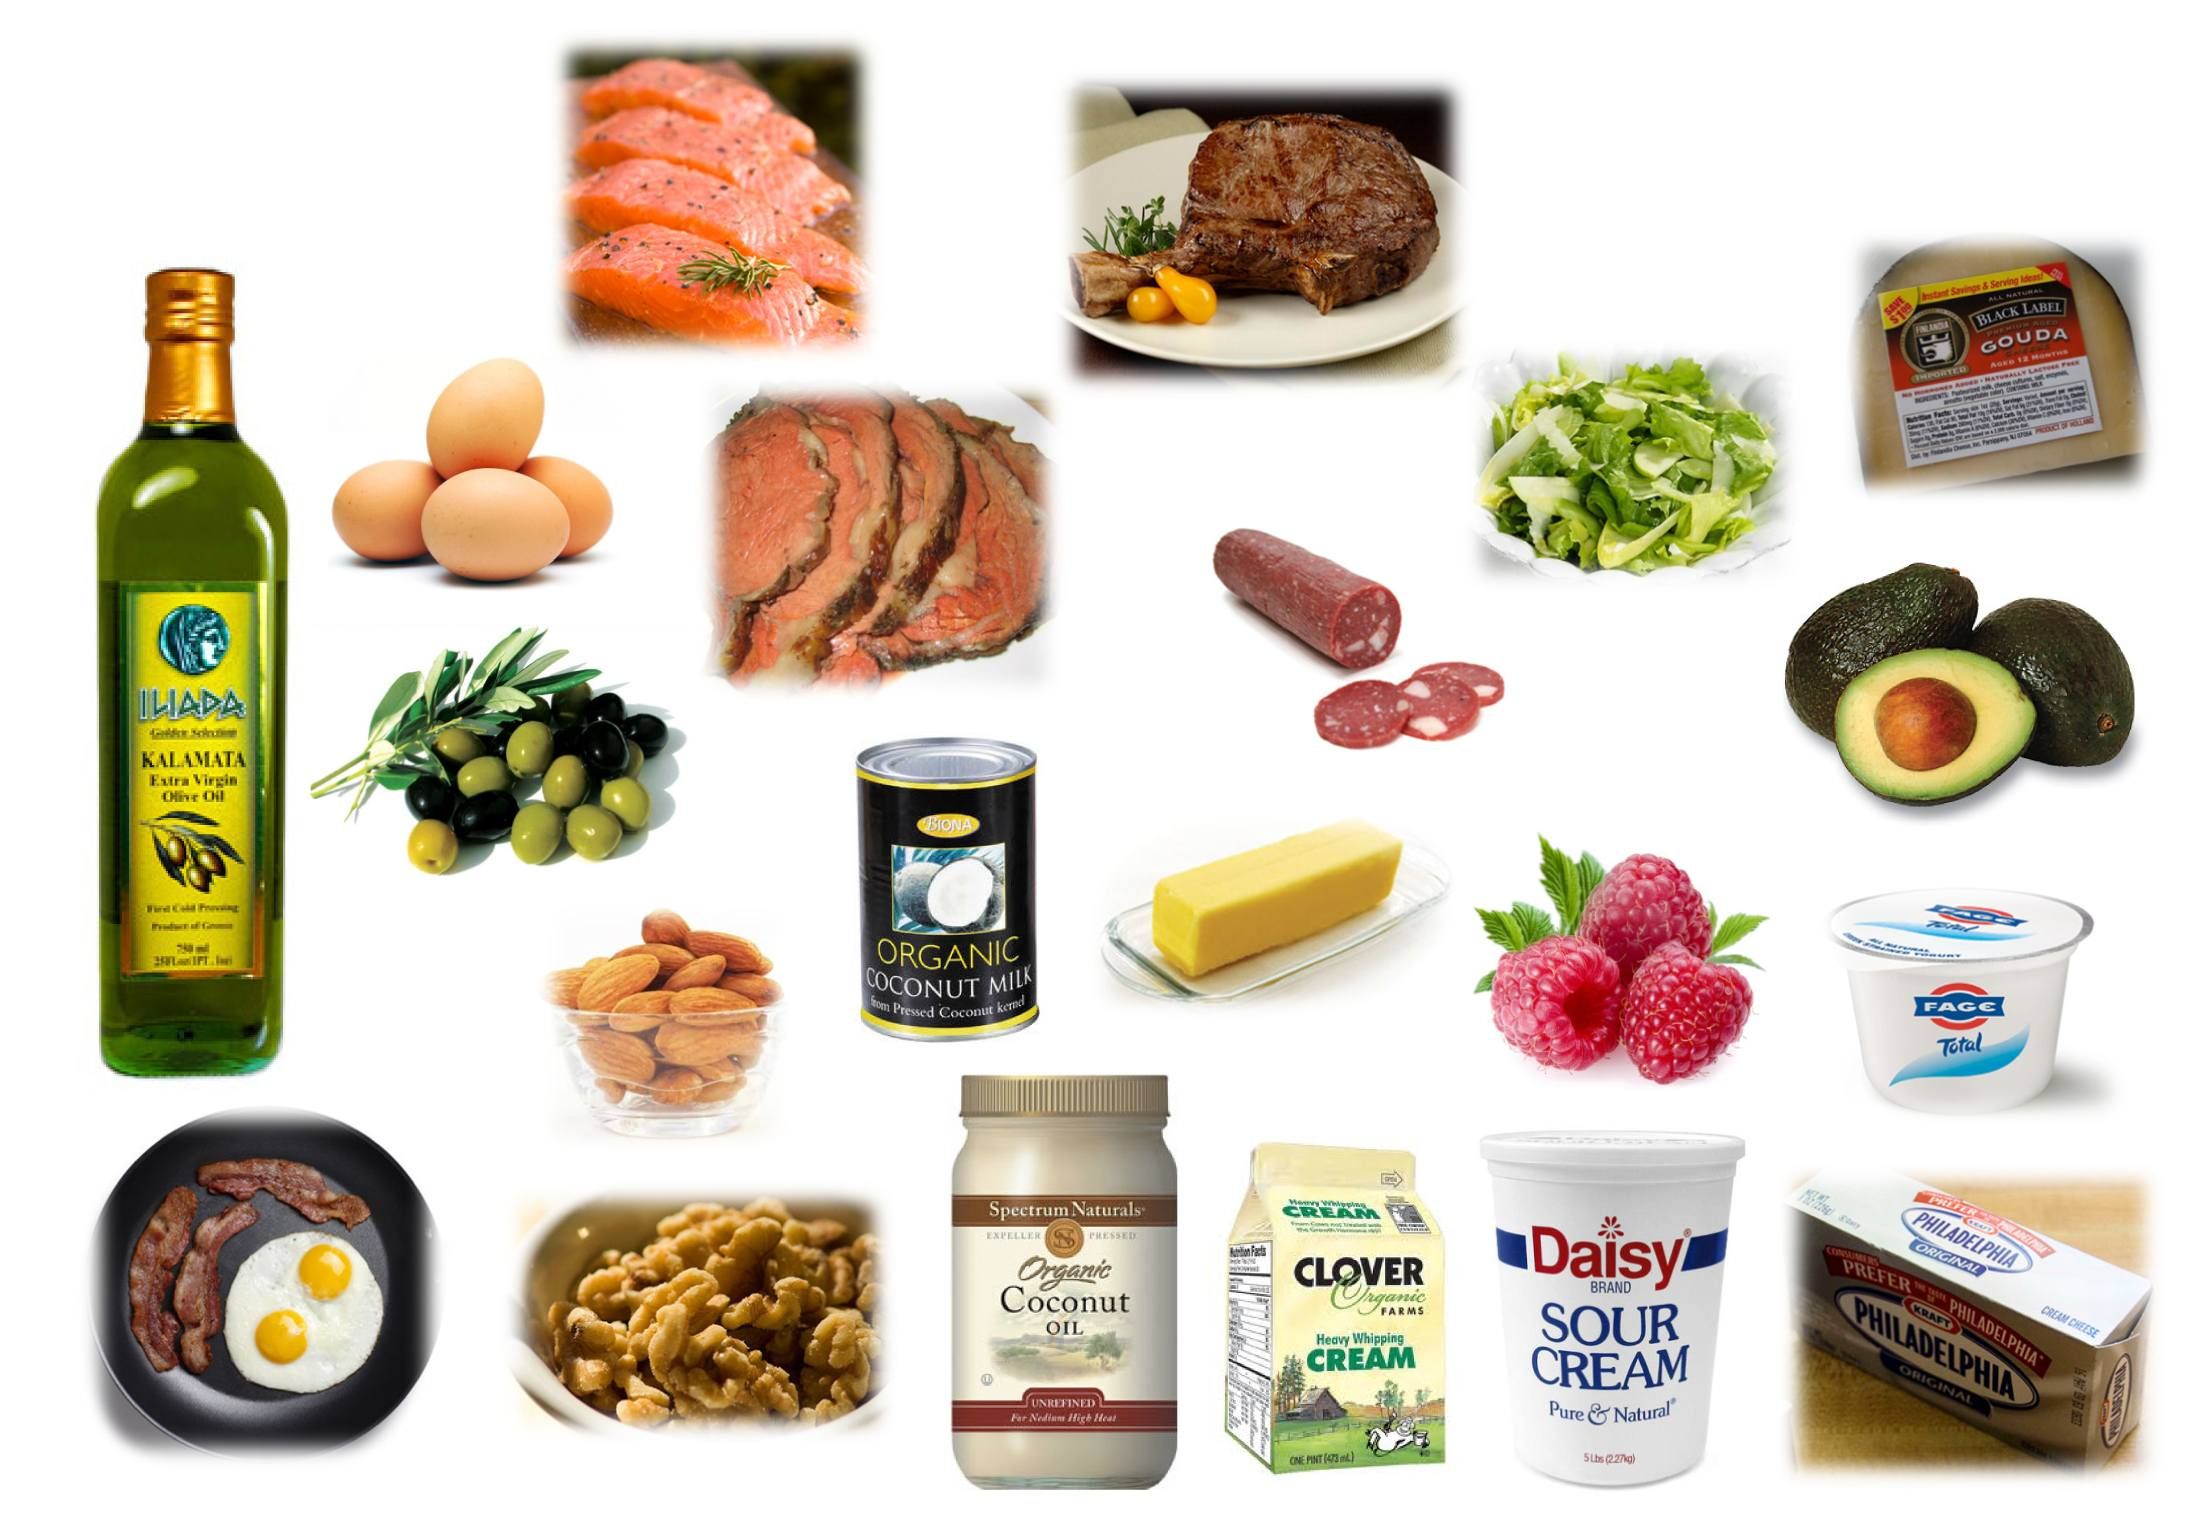 Foods I typically eat